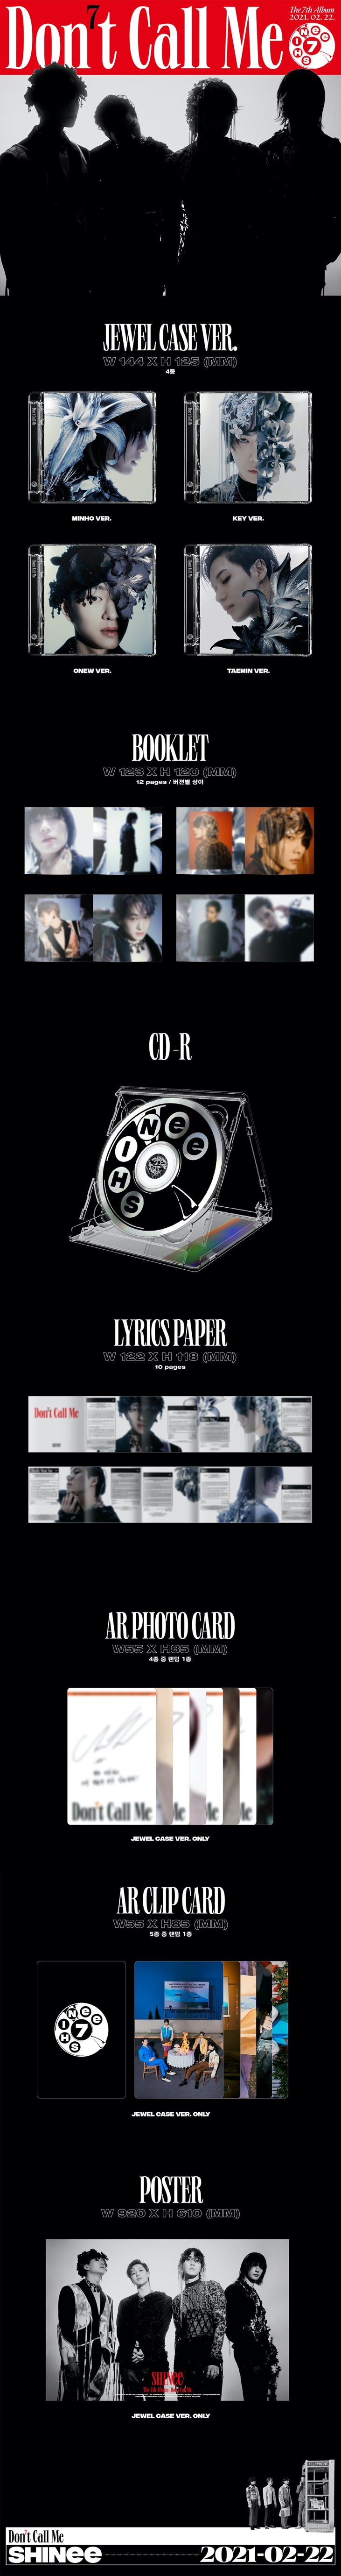 SHINEE Don't Call Me JEWEL CASE Infographic